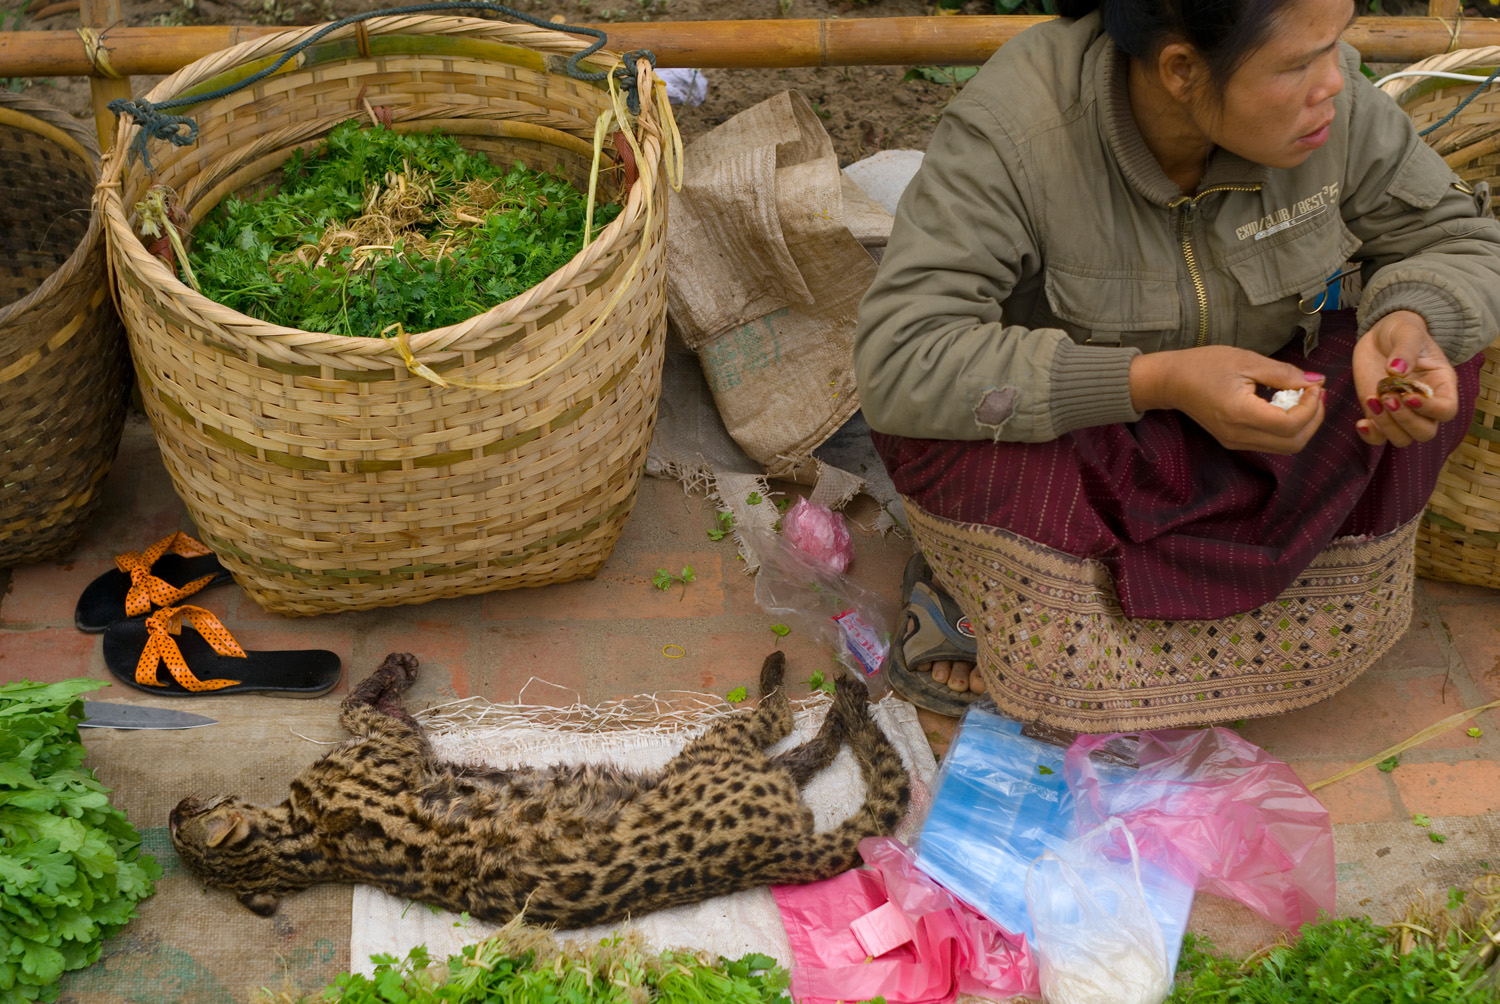 Fresh herbs and a fishing cat for sale at the morning market in Luang Prabang, Laos.